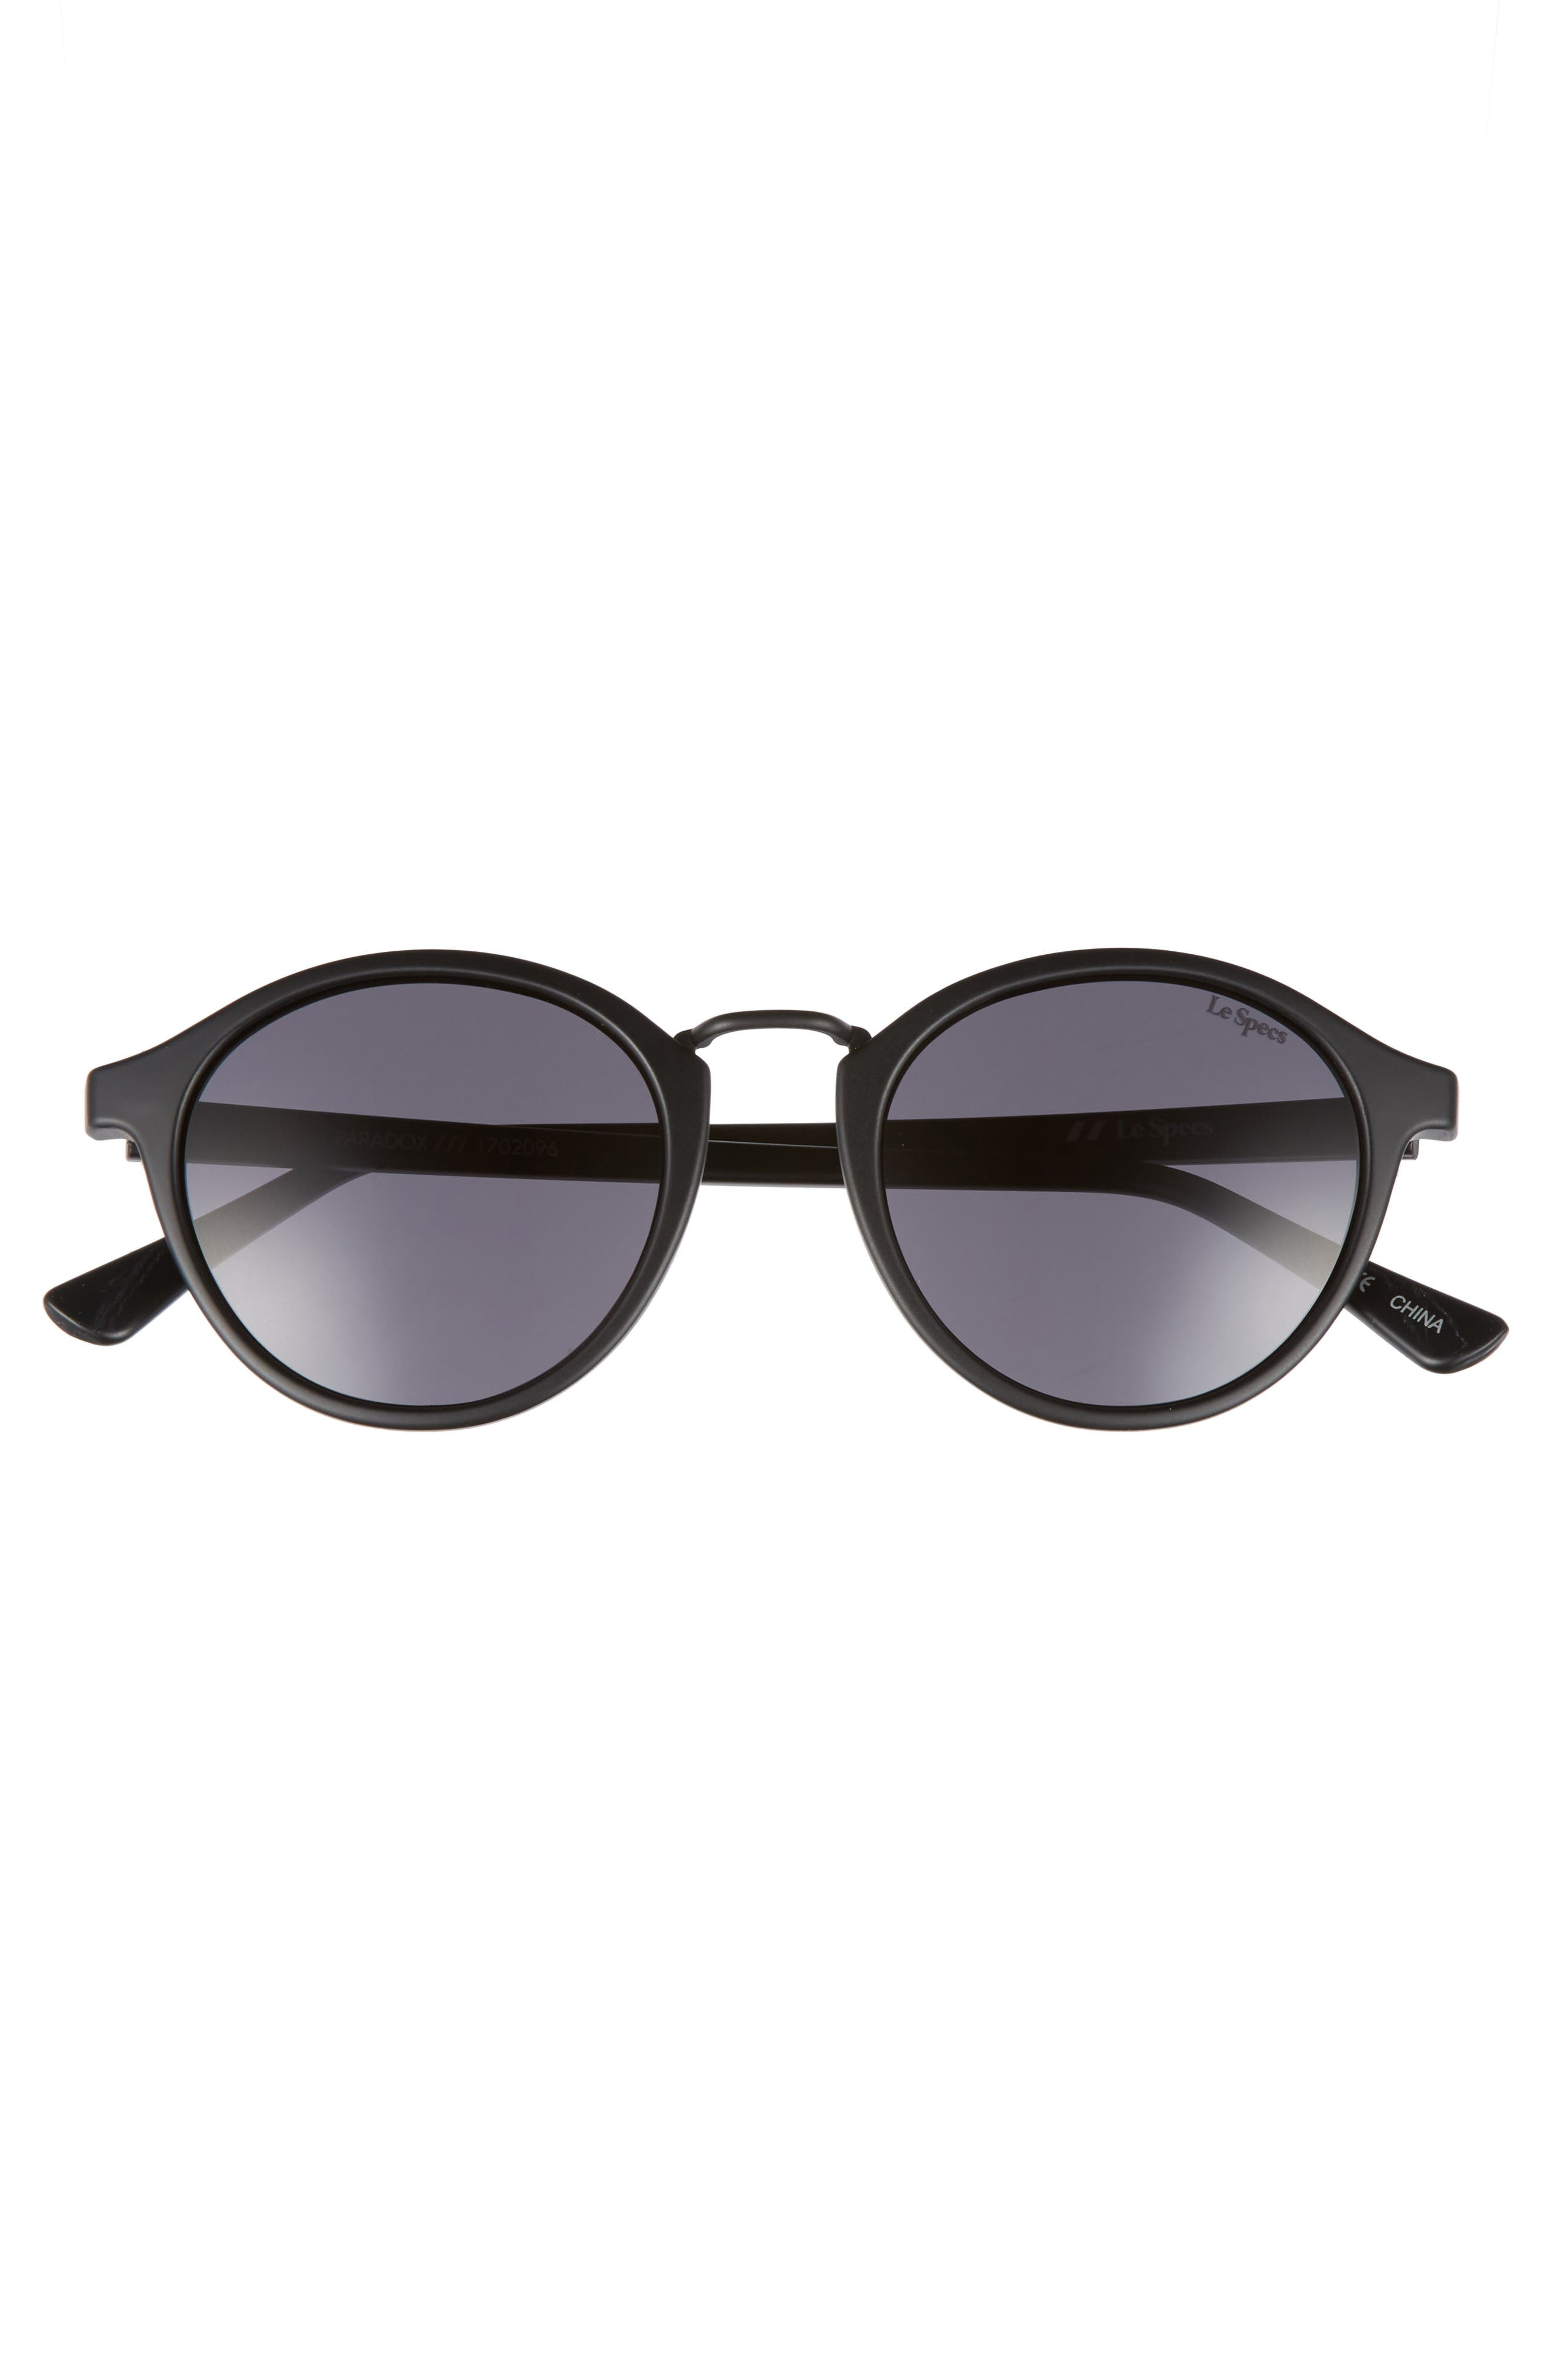 Paradox 49mm Oval Sunglasses,                             Alternate thumbnail 3, color,                             001